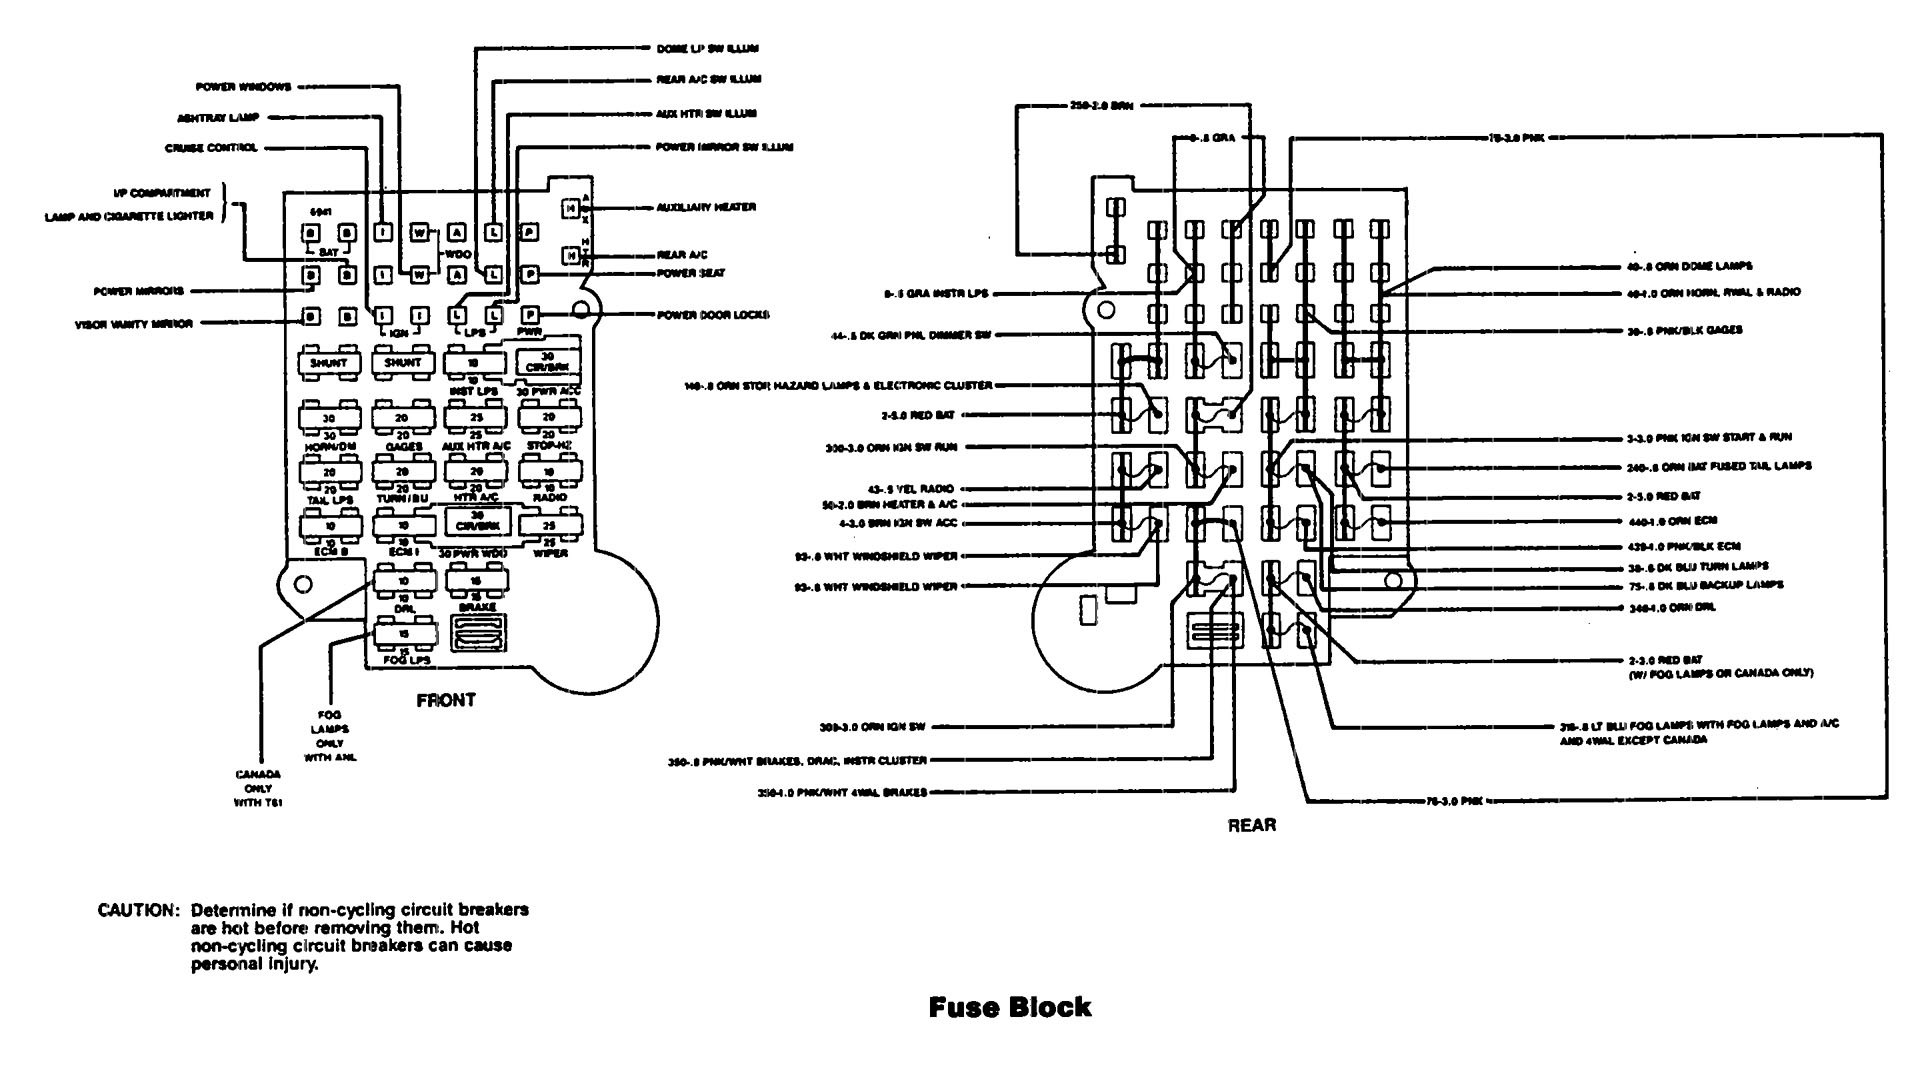 hight resolution of 1988 f150 fuse box location wiring diagram forward 88 f150 fuse box